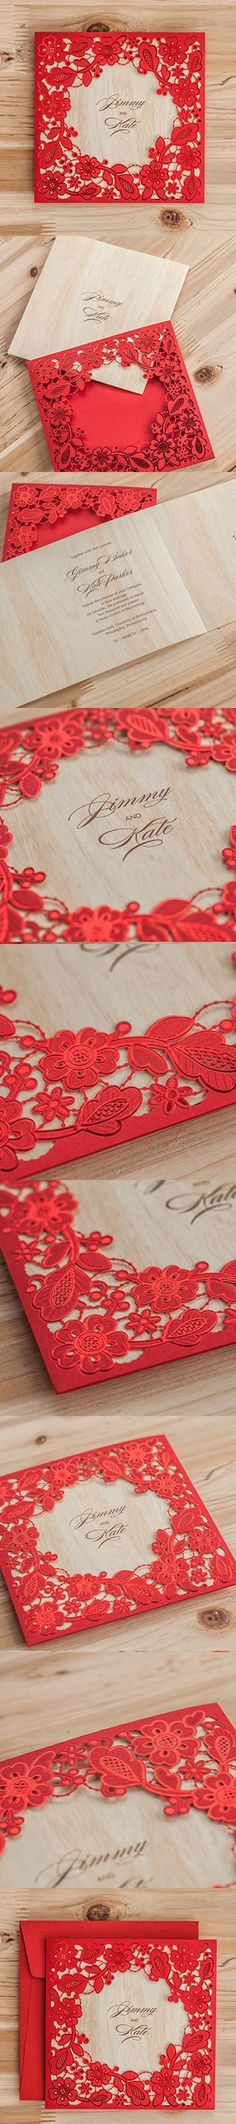 Wishmade 1x Red Laser Cut Square Wedding Invitations Kits with Embossed Hollow Favors Bridal Shower Engagement Birthday Greeting Cards CW5280